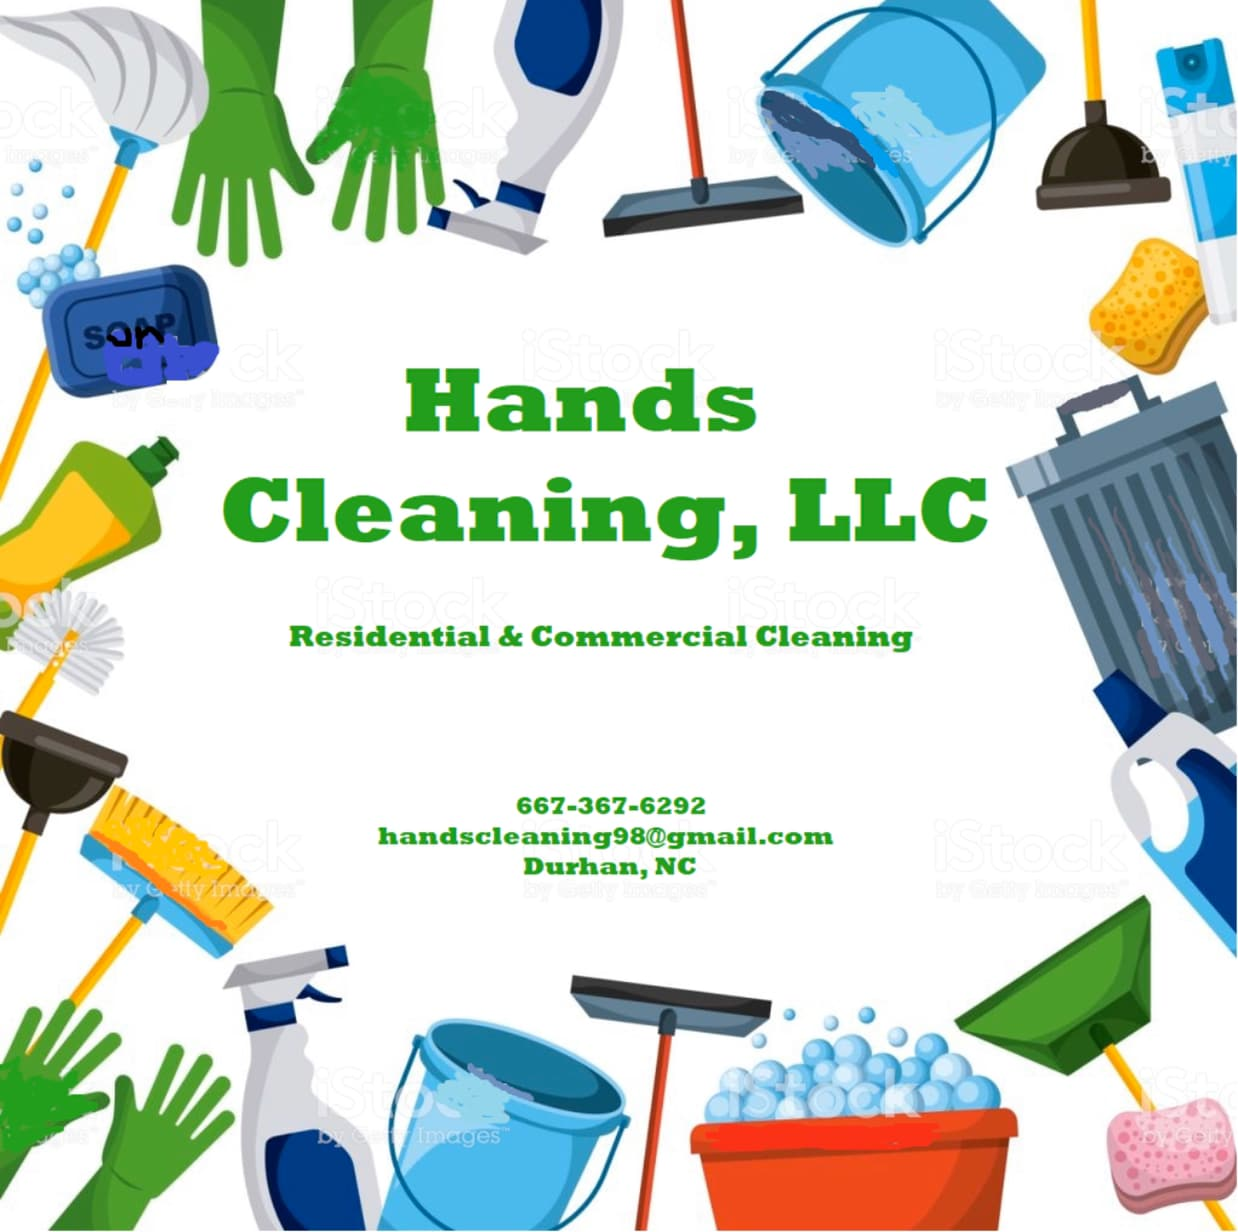 Hands Cleaning LLC